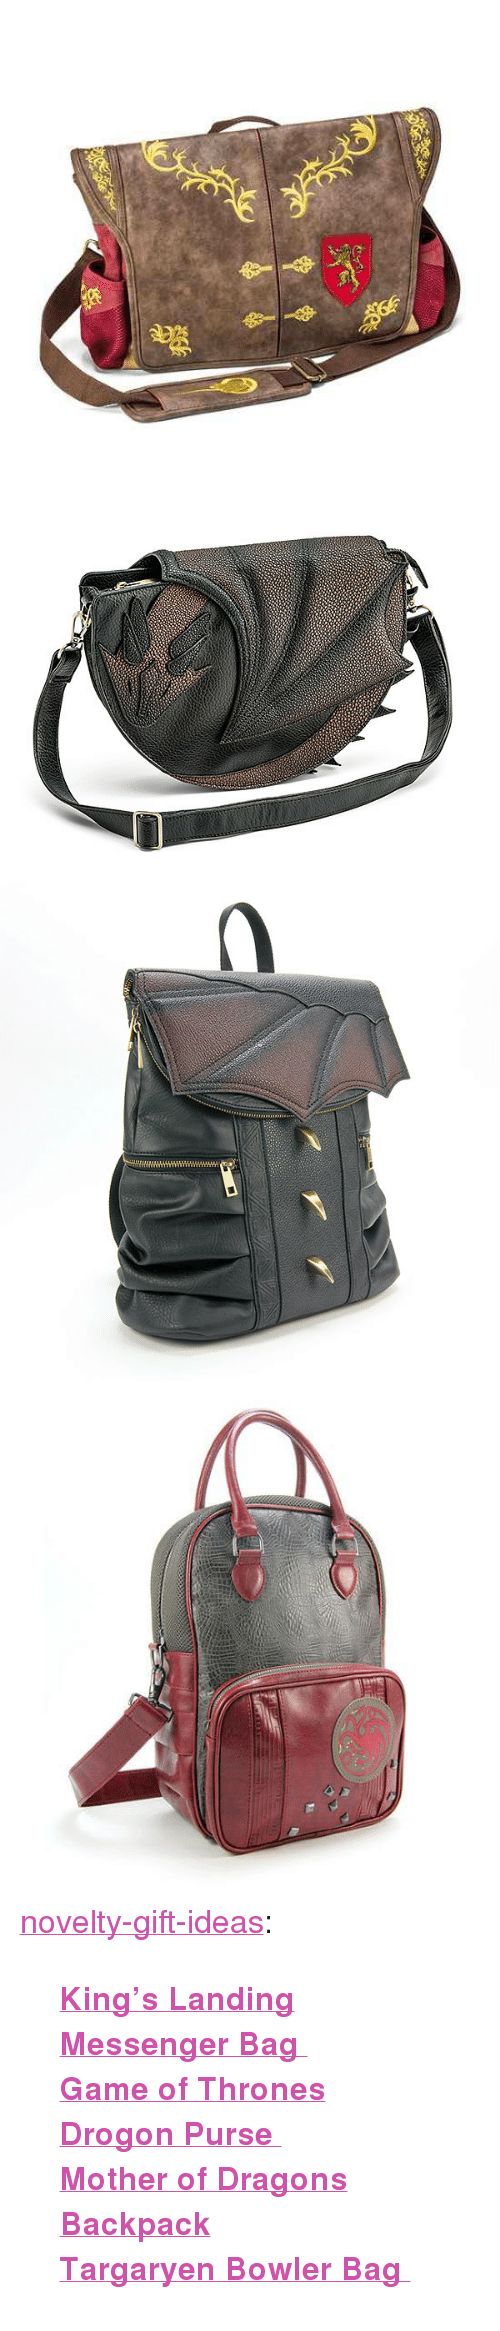 "drogon: <p><a href=""https://novelty-gift-ideas.tumblr.com/post/172899024893/kings-landing-messenger-bag-game-of-thrones"" class=""tumblr_blog"">novelty-gift-ideas</a>:</p><blockquote><p><b><a href=""https://awesomage.com/game-of-thrones-kings-landing-messenger-bag/"">King's Landing Messenger Bag  </a><br/><a href=""https://awesomage.com/game-of-thrones-drogon-purse/"">  Game of Thrones Drogon Purse  </a><br/><a href=""https://awesomage.com/game-of-thrones-mother-of-dragons-backpack/"">  Mother of Dragons Backpack</a><br/><a href=""https://awesomage.com/game-of-thrones-targaryen-bowler-bag/"">  Targaryen Bowler Bag  </a></b><br/></p></blockquote>"